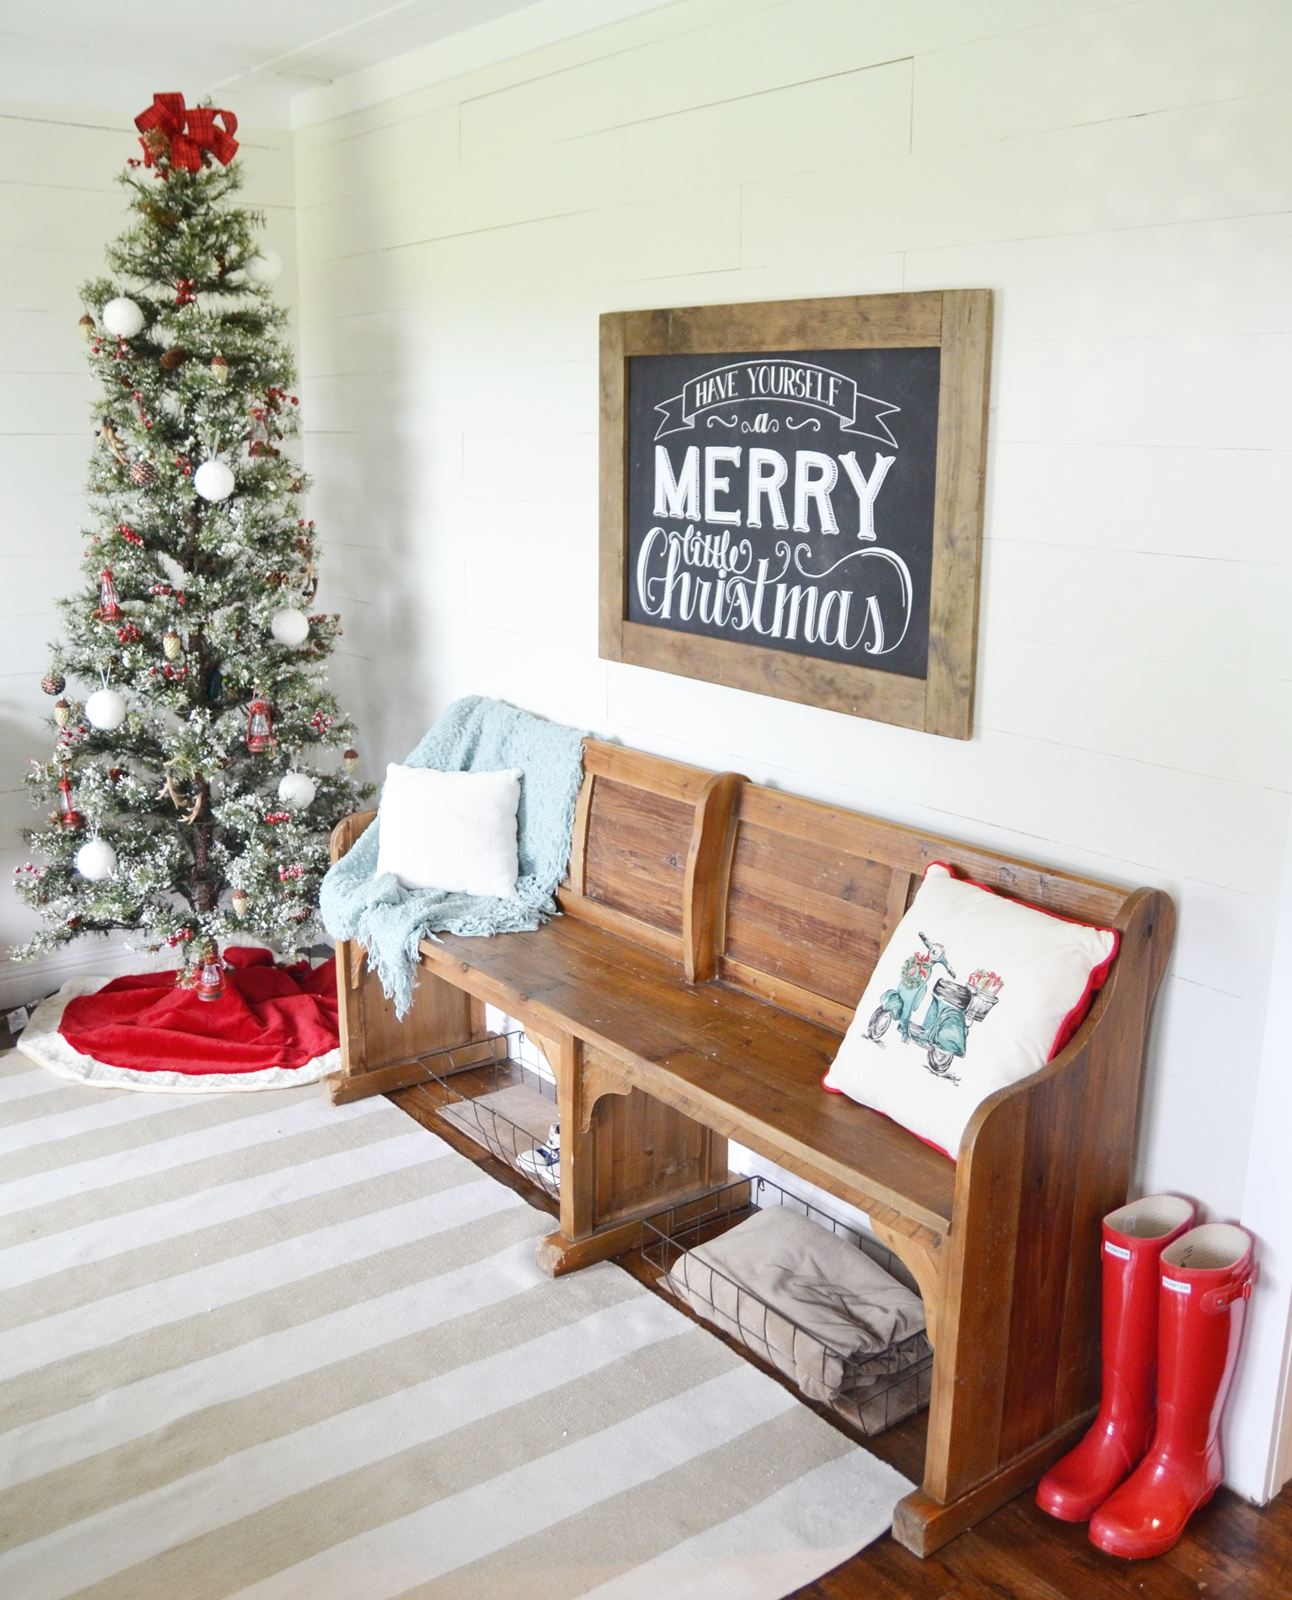 Foyer Rugs For Christmas: Our Merry Christmas Entry Way!